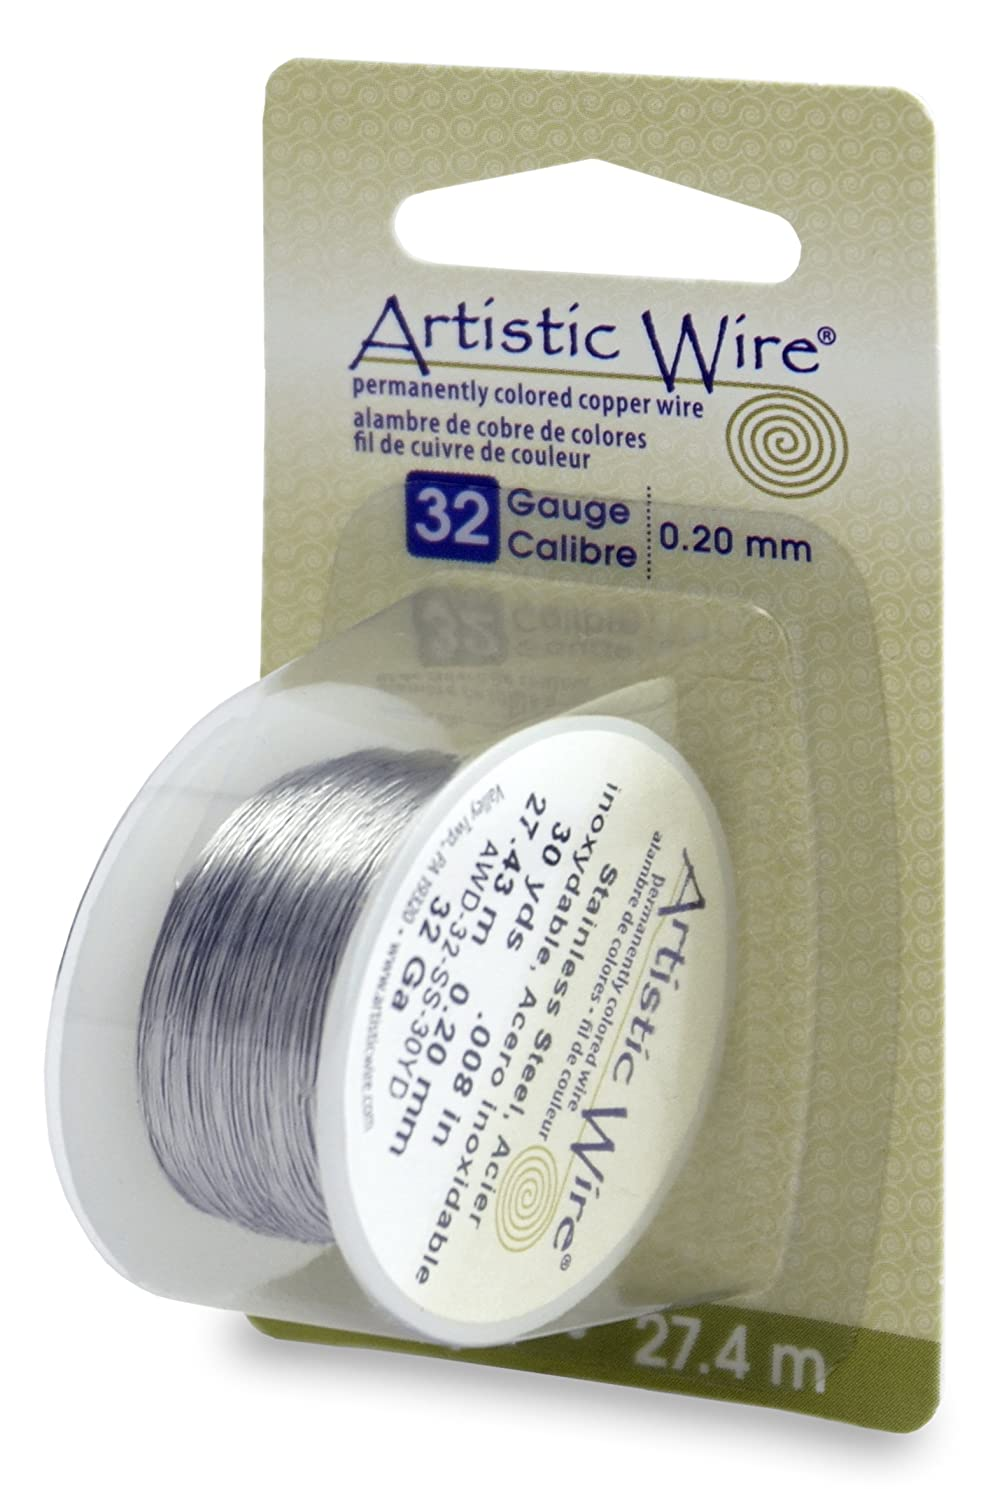 Artistic Wire Beadalon, 32 Gauge, Stainless Steel, 30 yd (27.4 m) Craft Wire, Shiny